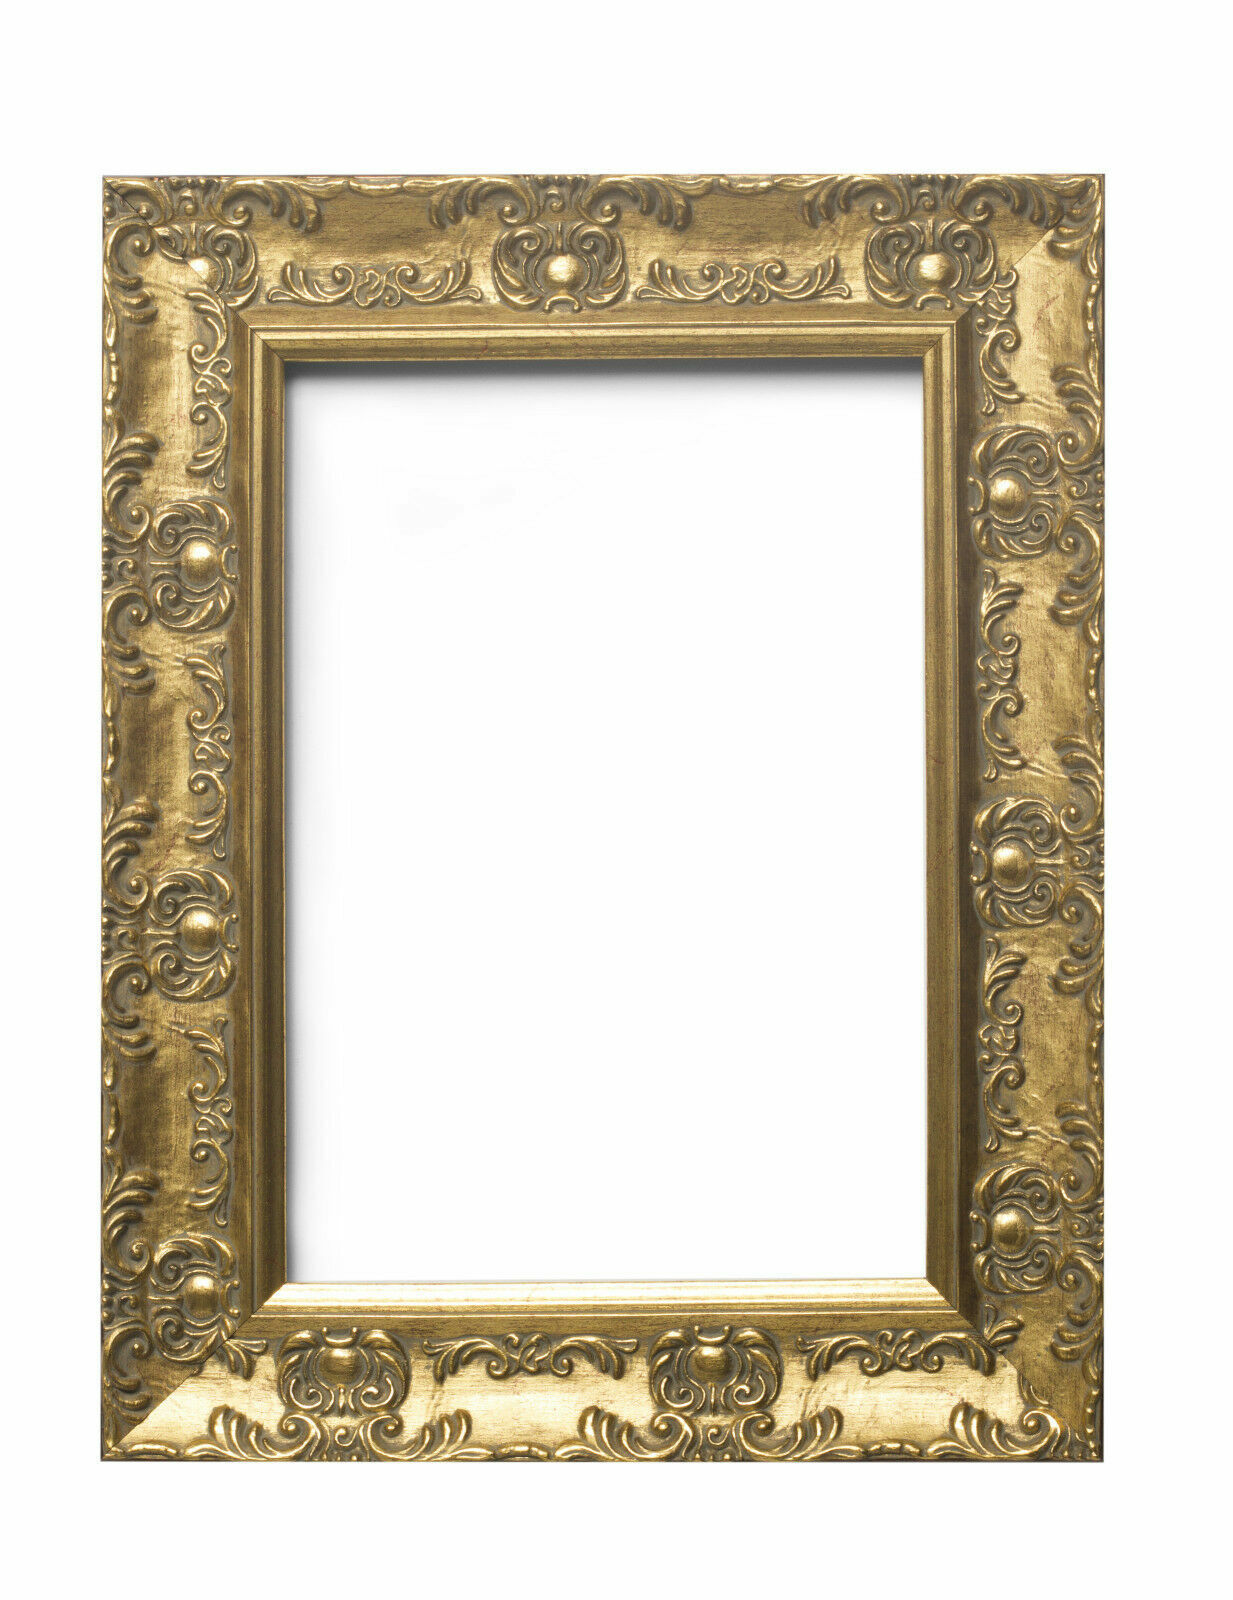 12x17 photo picture frames for sale